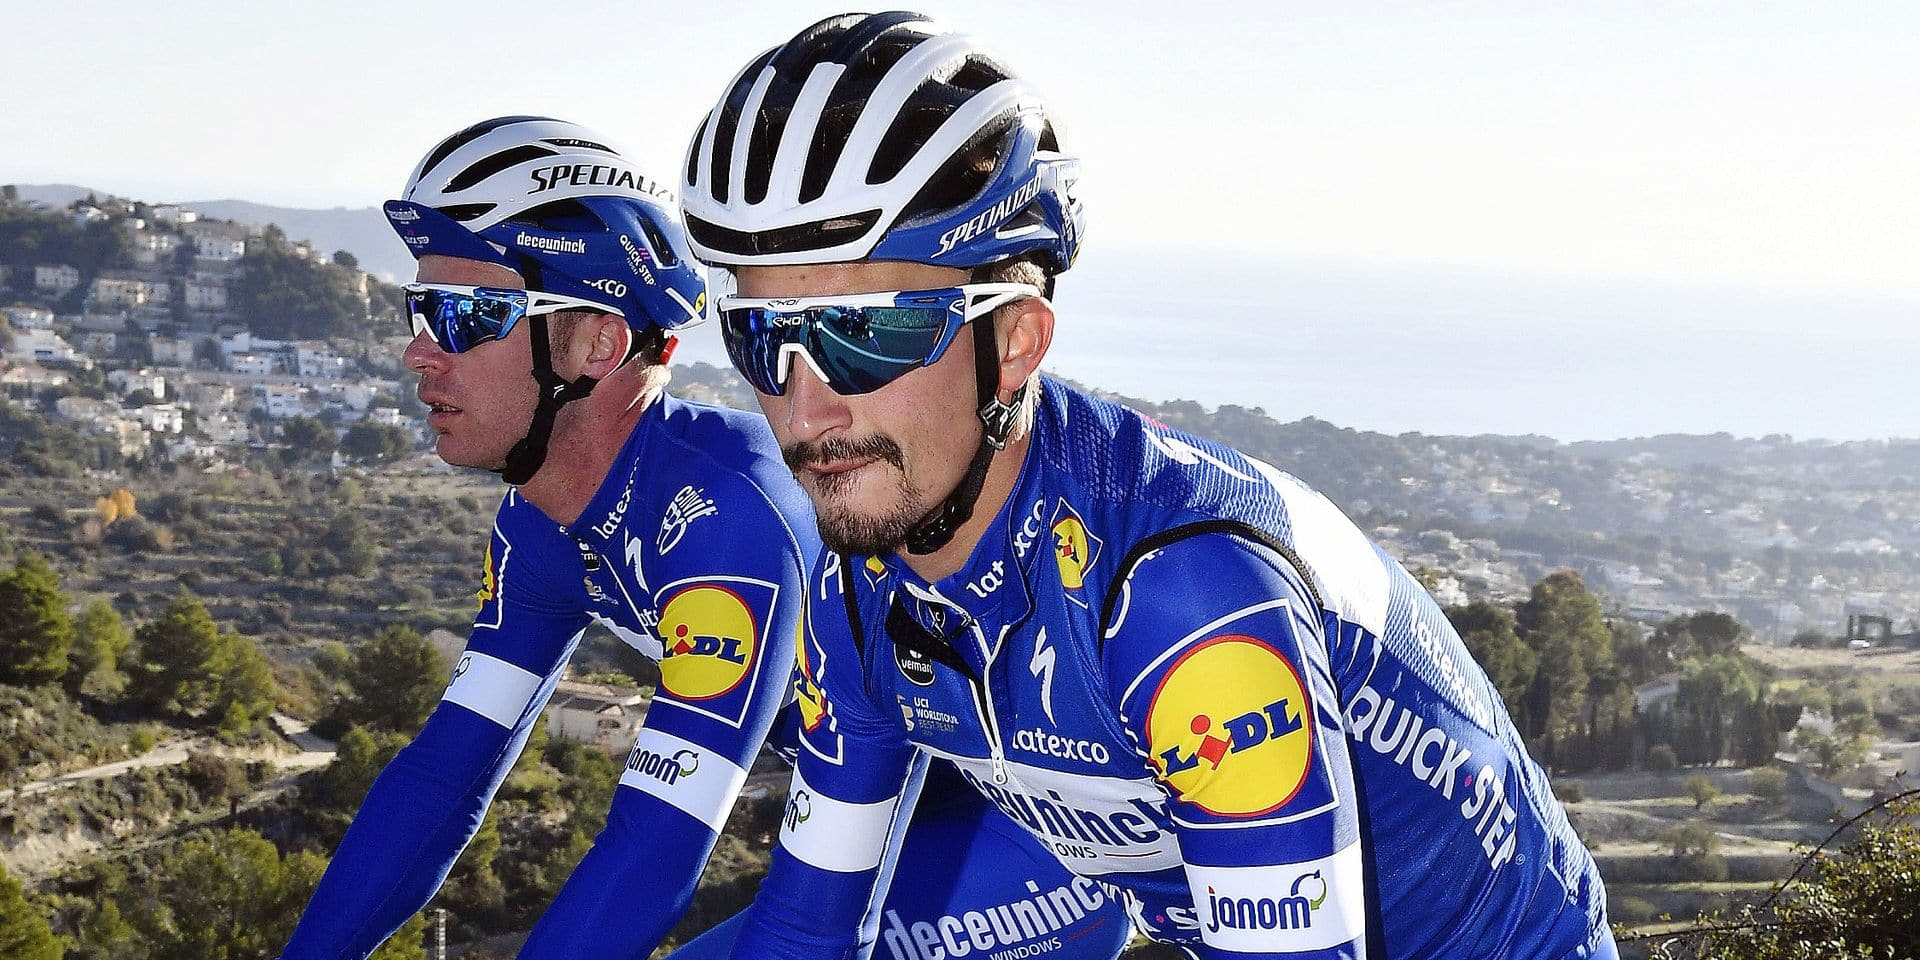 French Julian Alaphilippe of Quick-Step Floors pictured during a training session of Belgian cycling team Deceuninck - Quick-Step, in Calpe, Spain, Tuesday 08 January 2019. BELGA PHOTO ERIC LALMAND